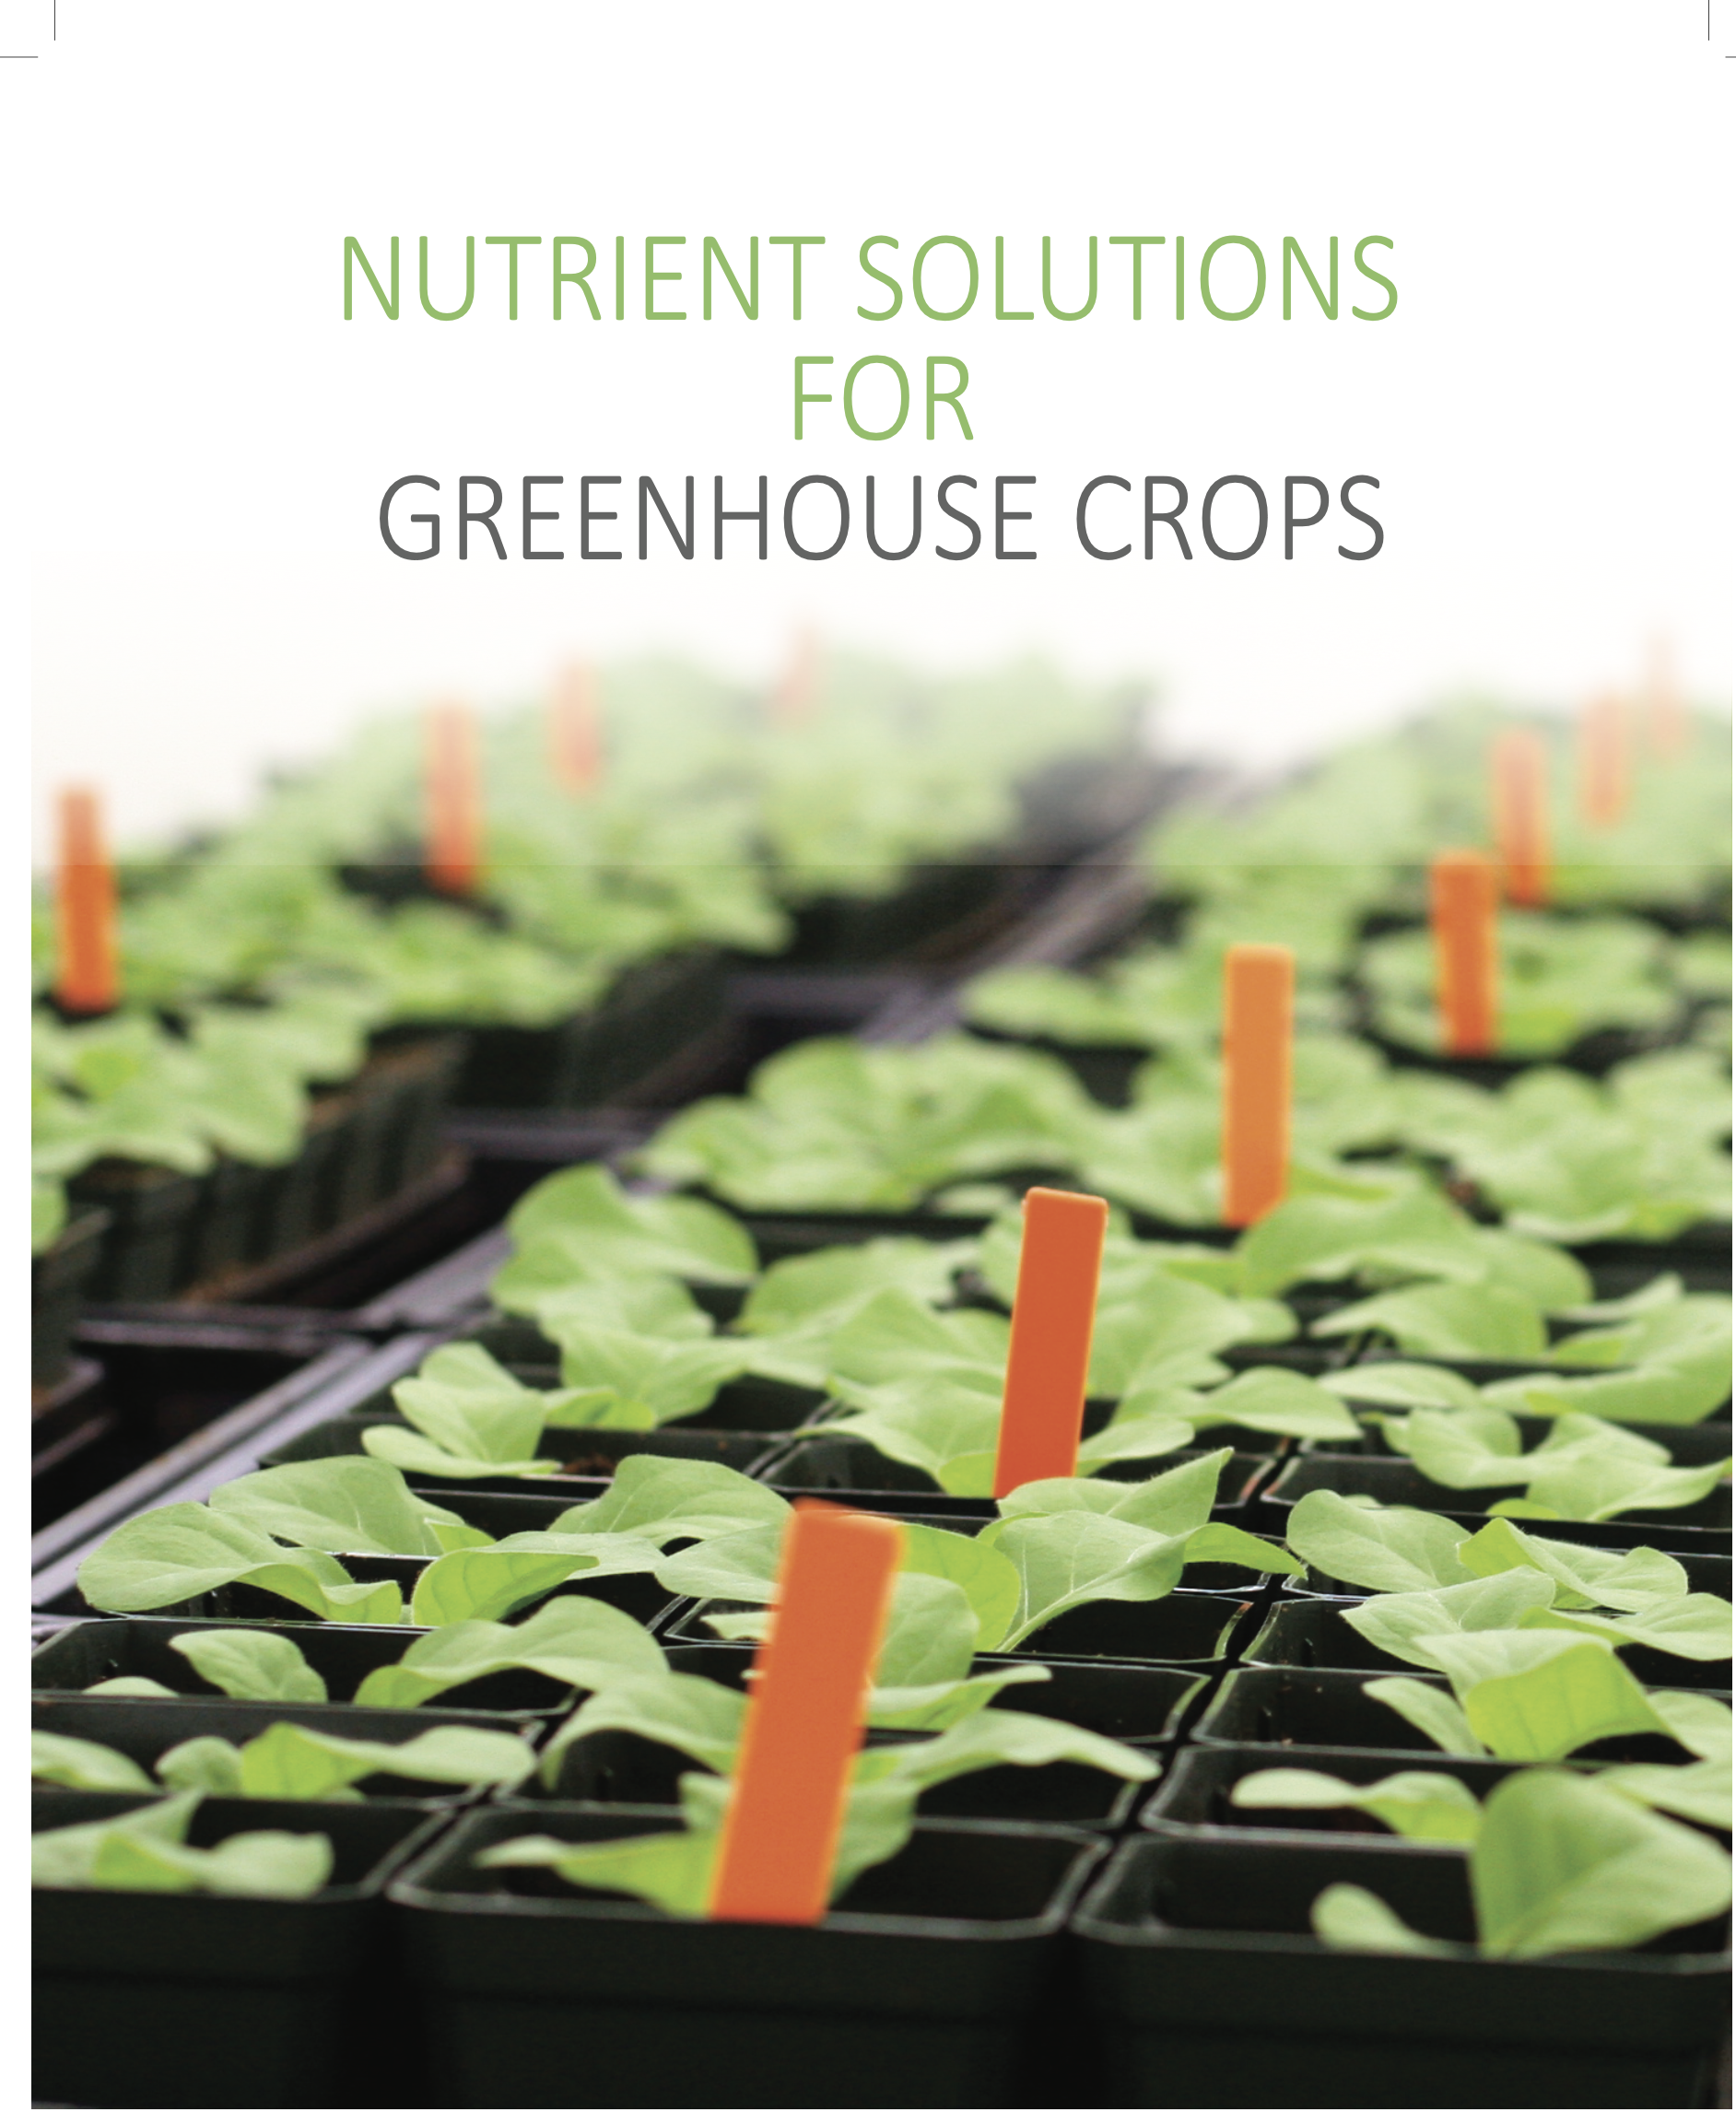 Nutrient Solutions for Greenhouse Crops